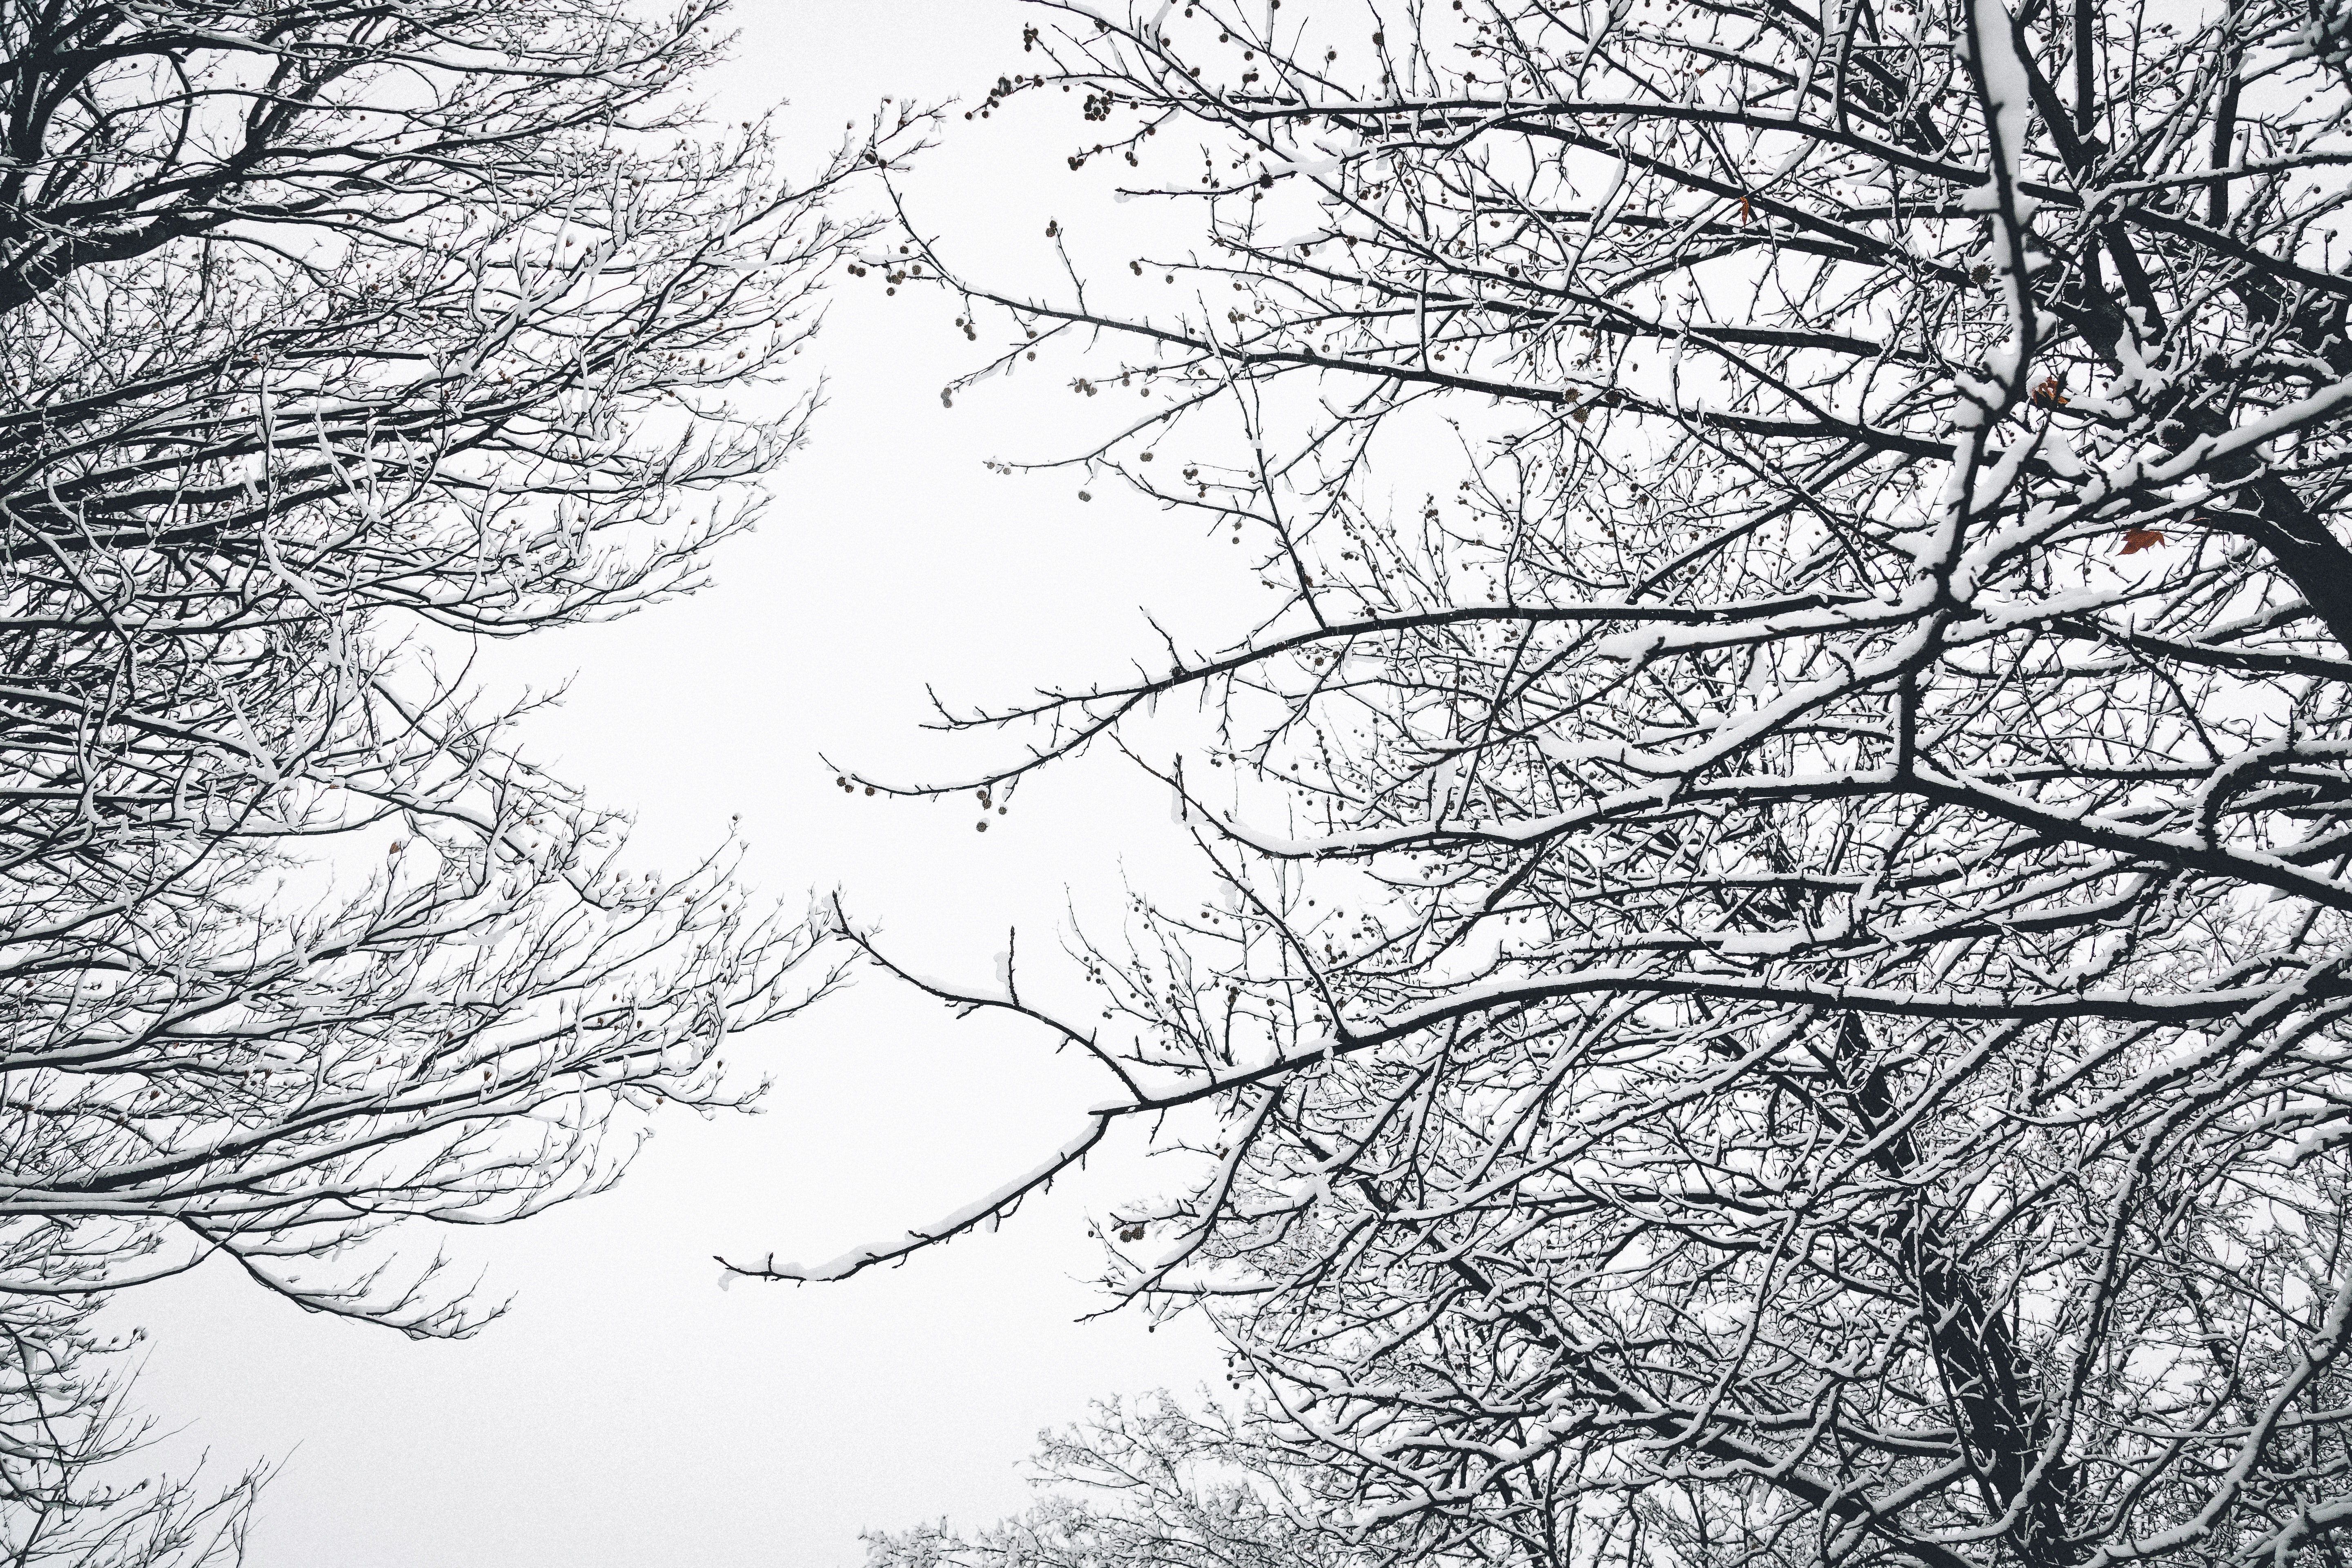 Low Angle Photography of Bare Tree during Winter Season, Branches, Snow, Winter, White, HQ Photo